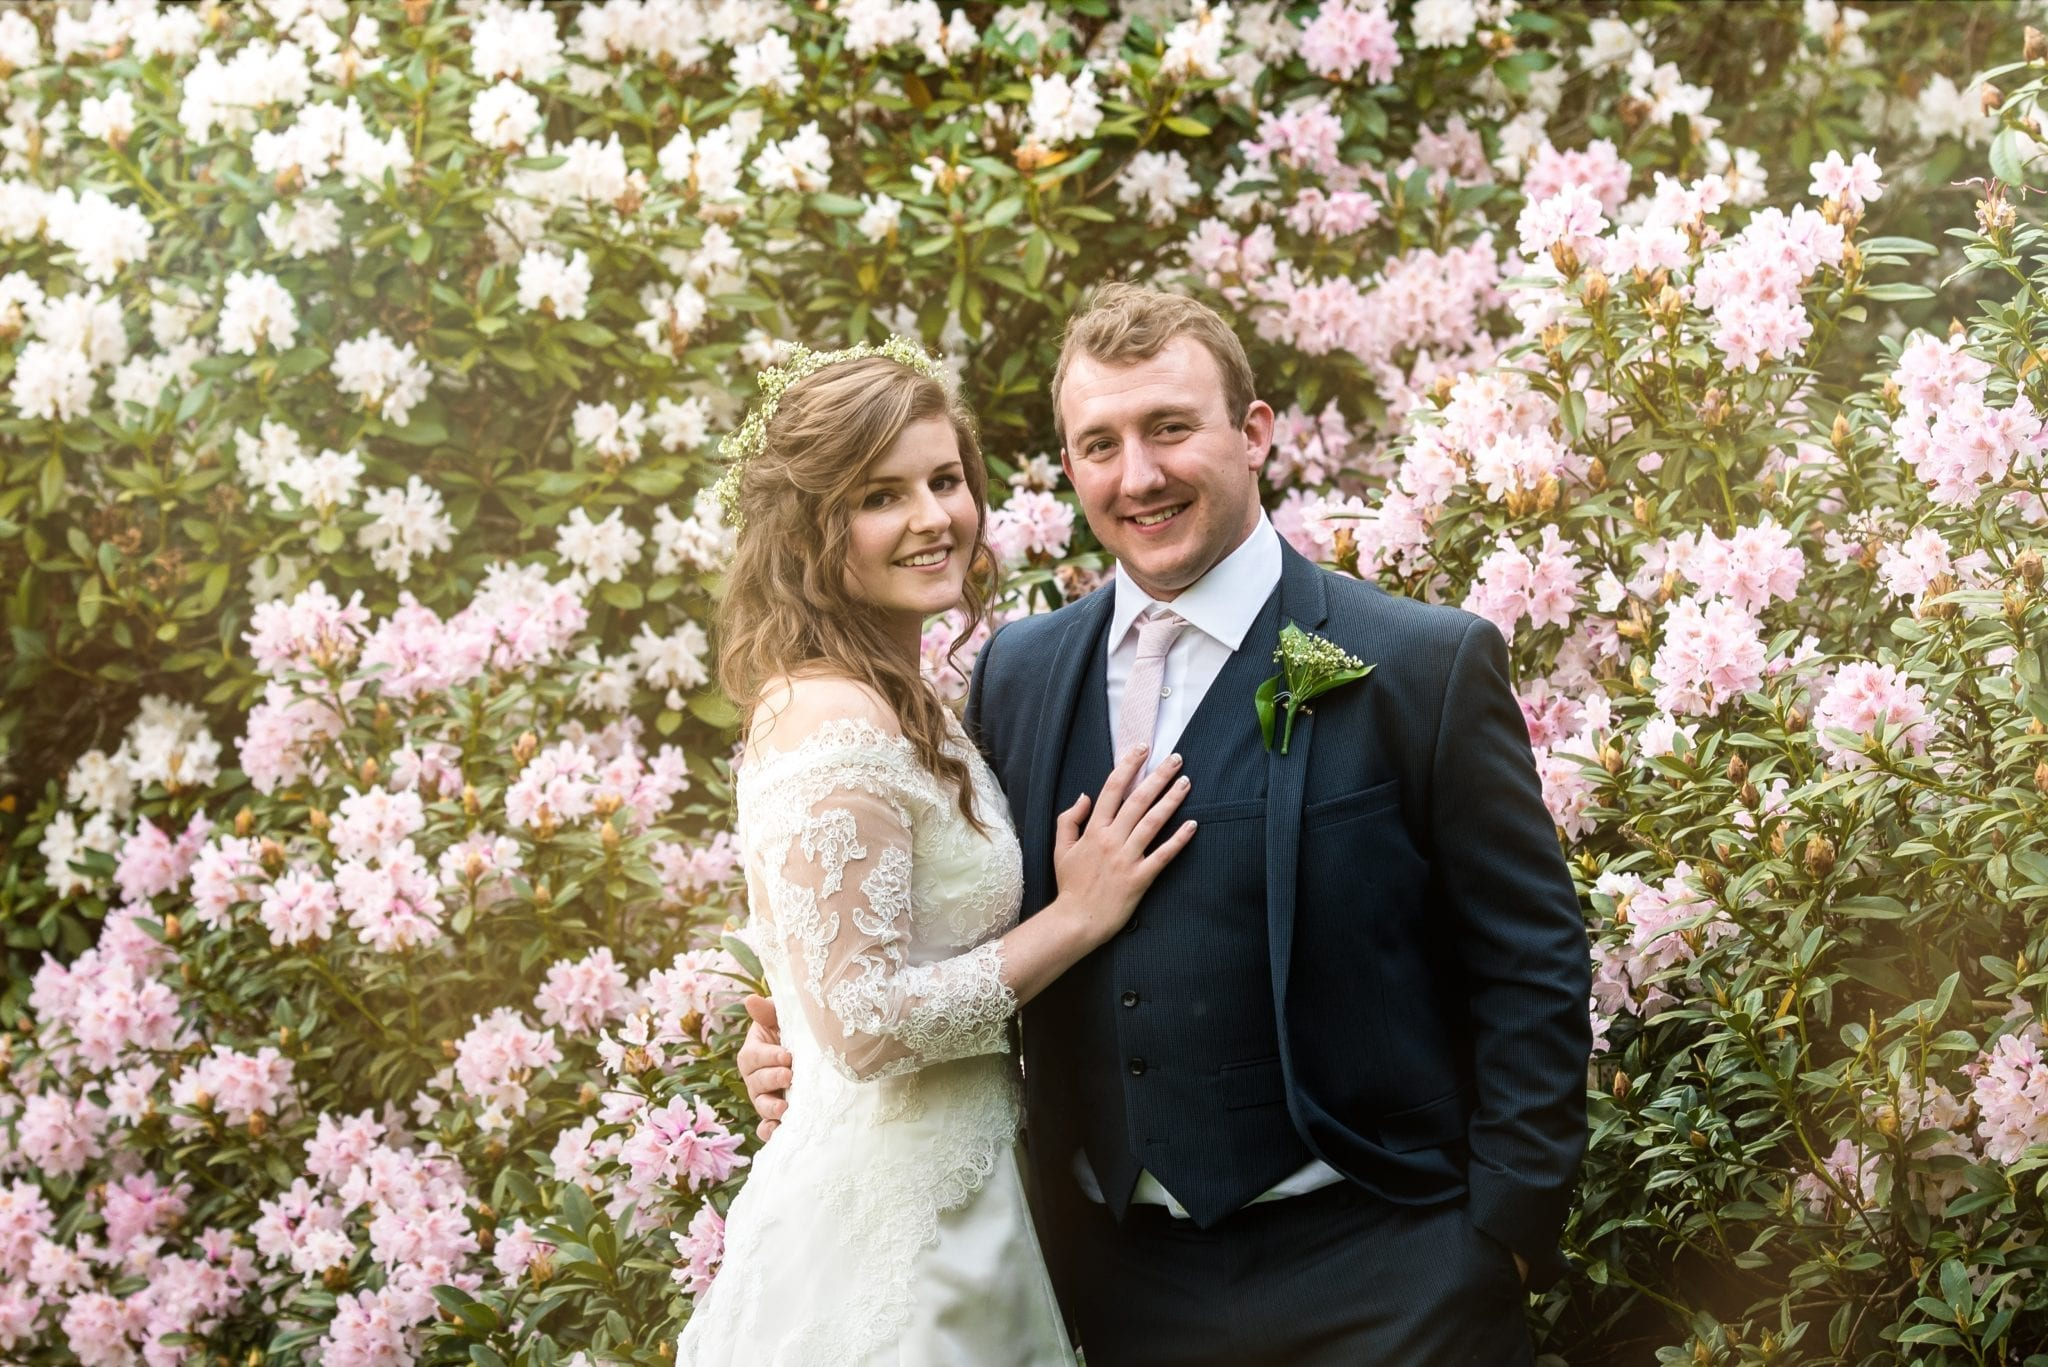 Real Wedding: Katie and Joe's Tale as Old as Time